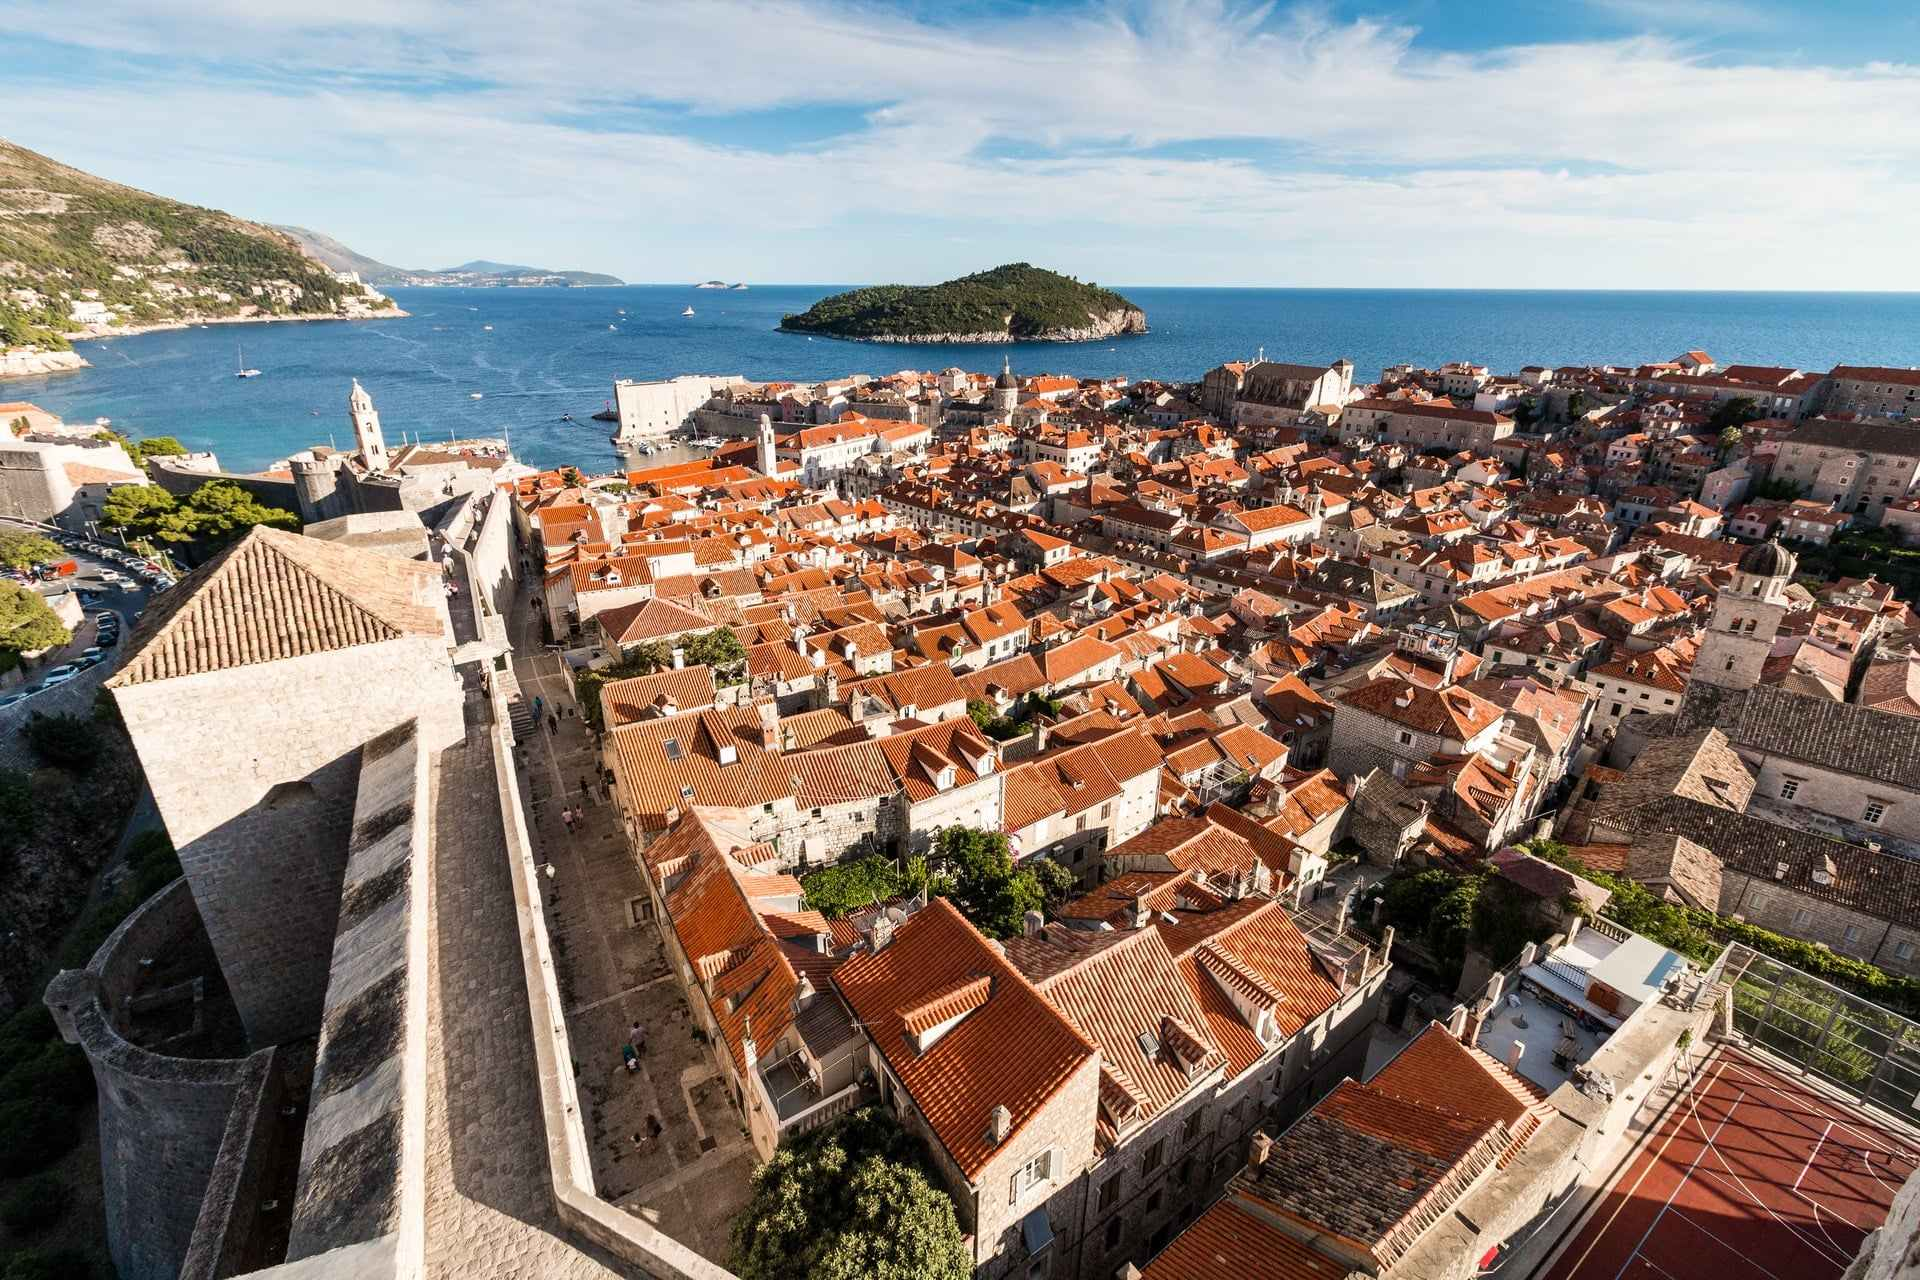 view-of-orange-roofs-of-dubrovnik-and-the-sea-from-the-city-walls-3-days-in-dubrovnik-itinerary